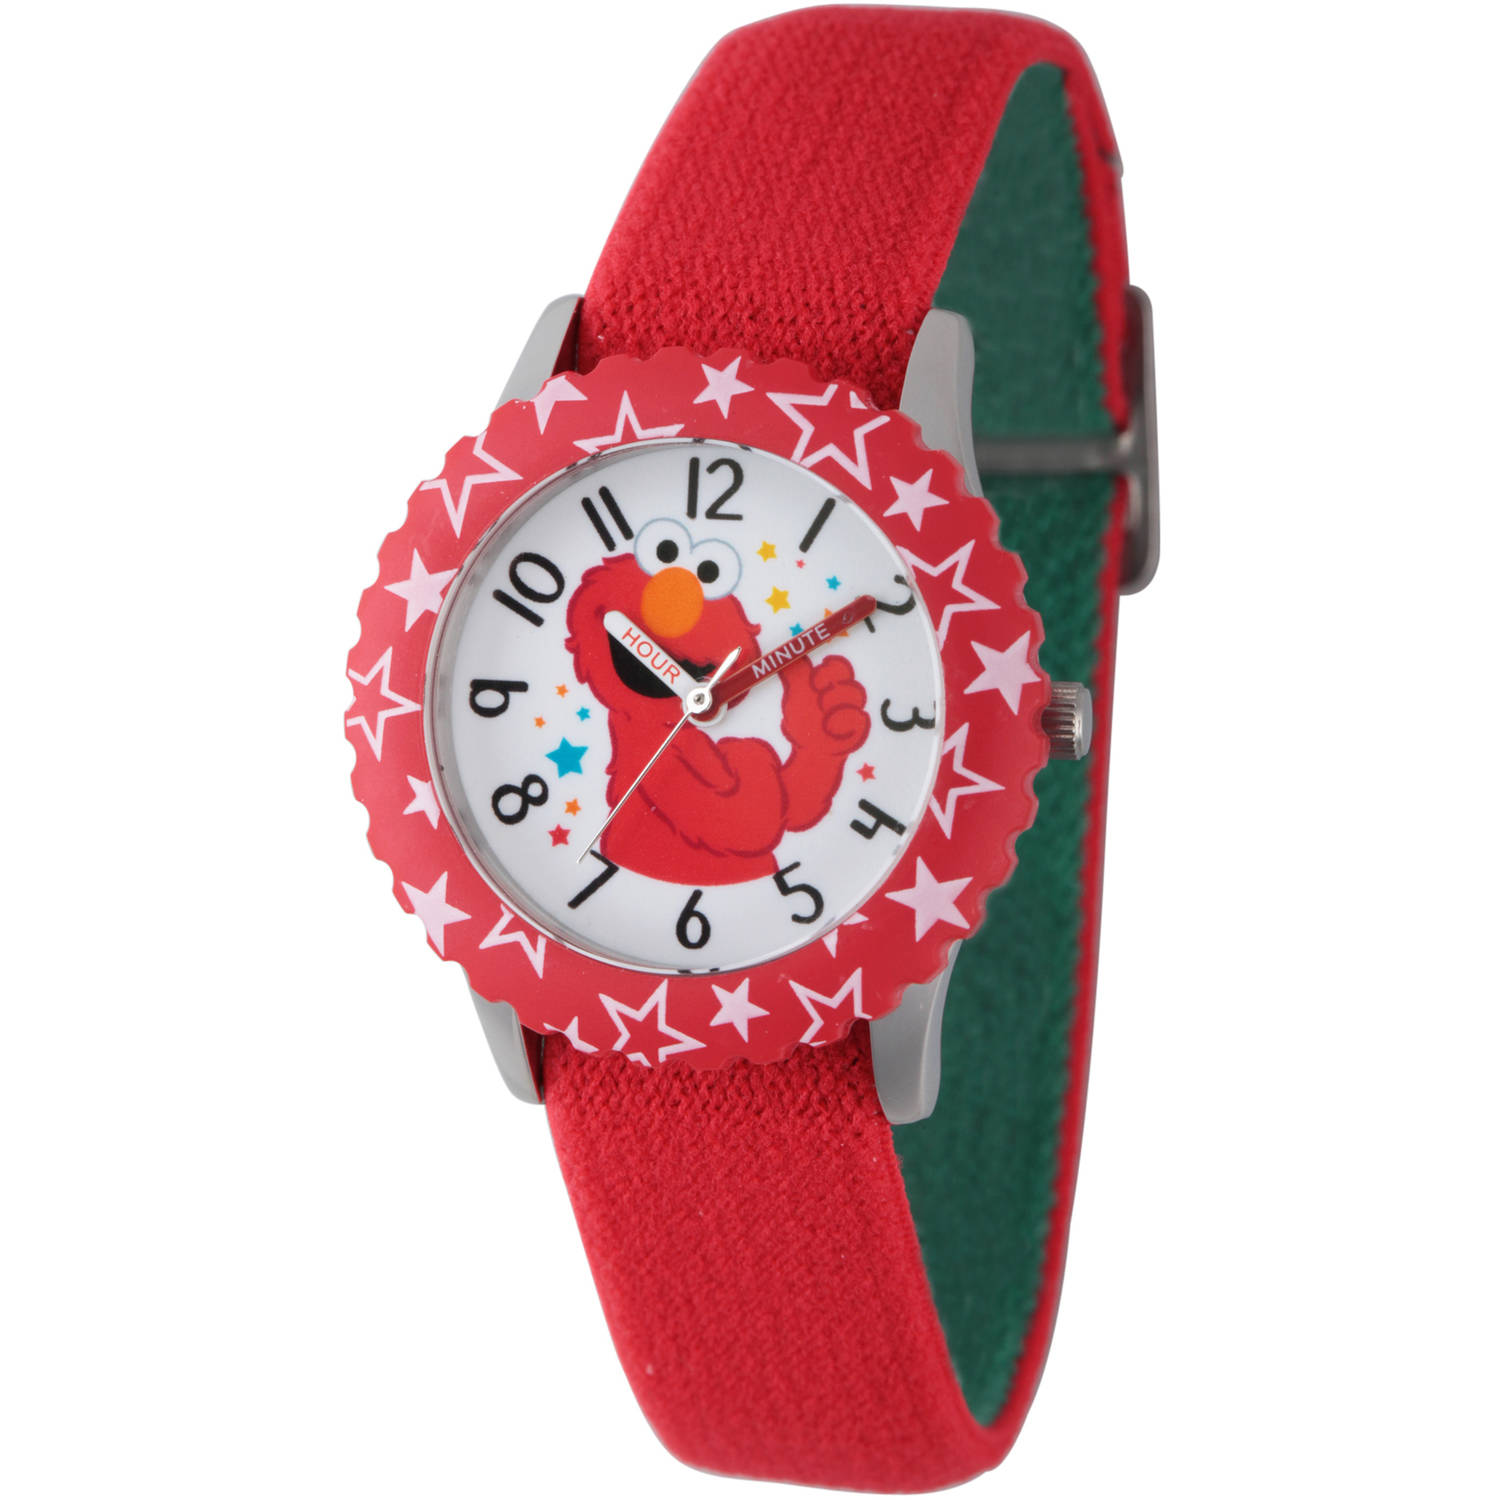 Sesame Street Elmo Stainless Steel Time Teacher Watch, Red Bezel, Reversible Red and Green Elastic Nylon Strap